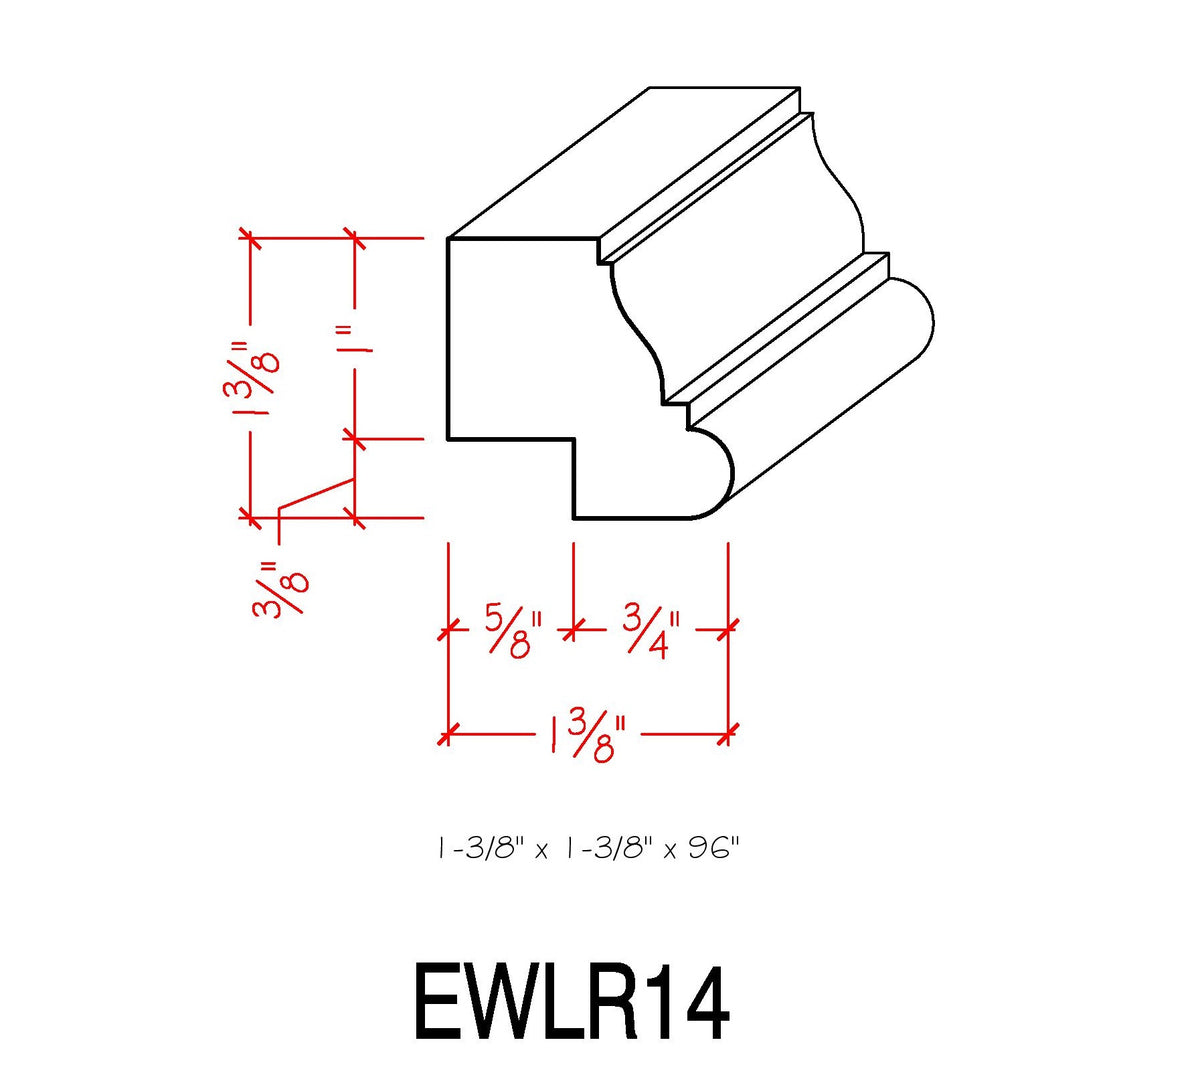 Light Rail EWLR14